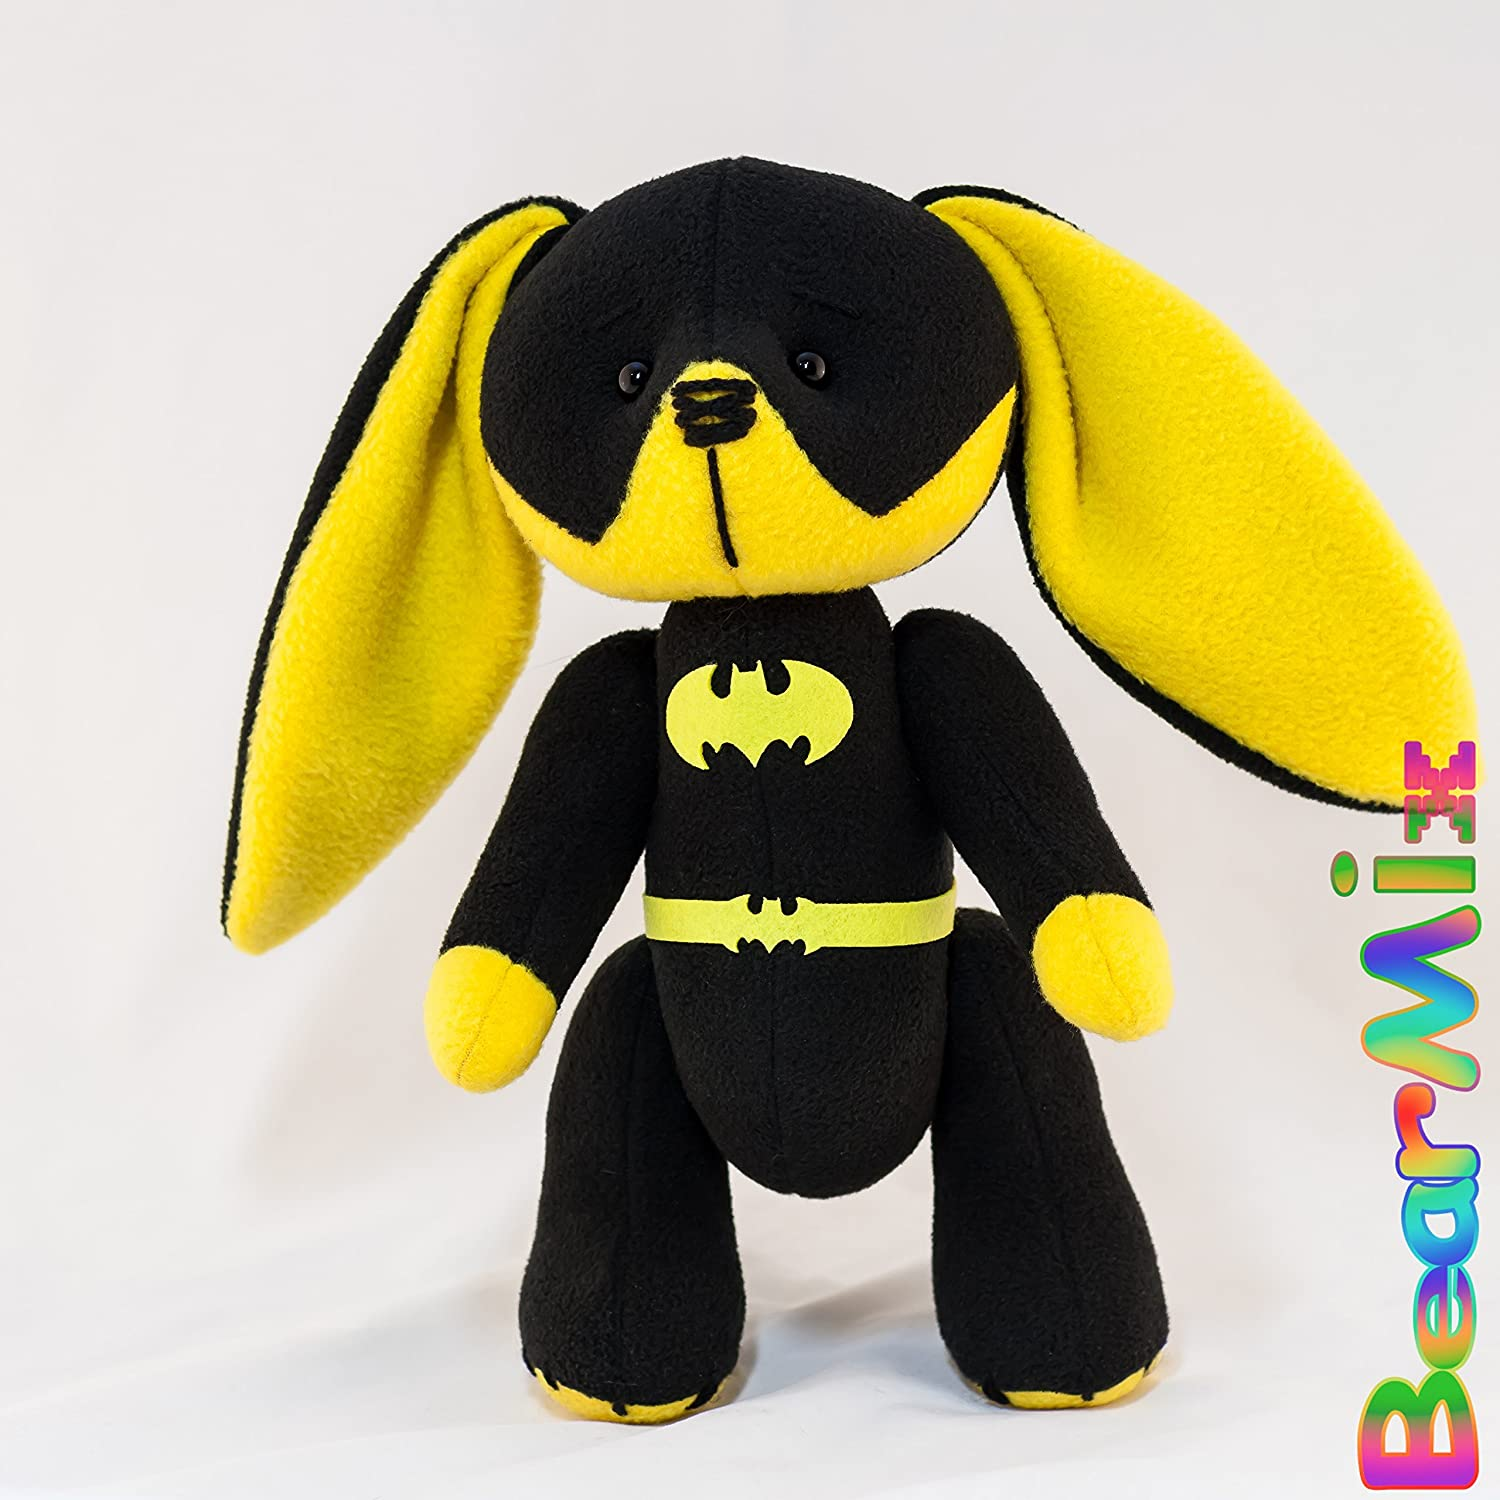 Batgirl bunny - dc superhero movie comic plush toy batman Barbara Gordon